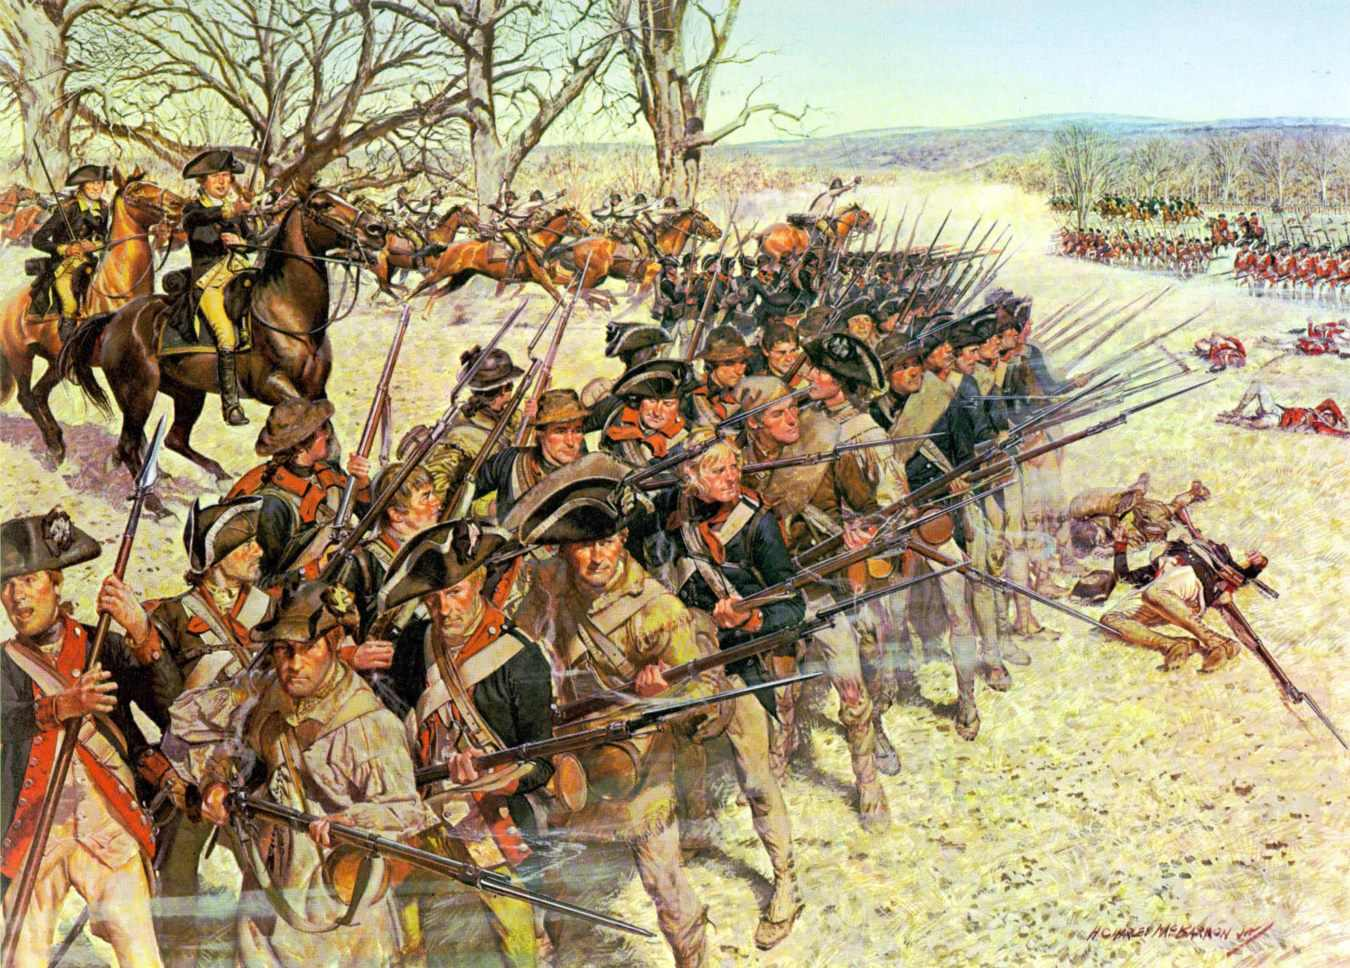 Battle of Guilford Courthouse by Hugh Charles McBarron, Jr.